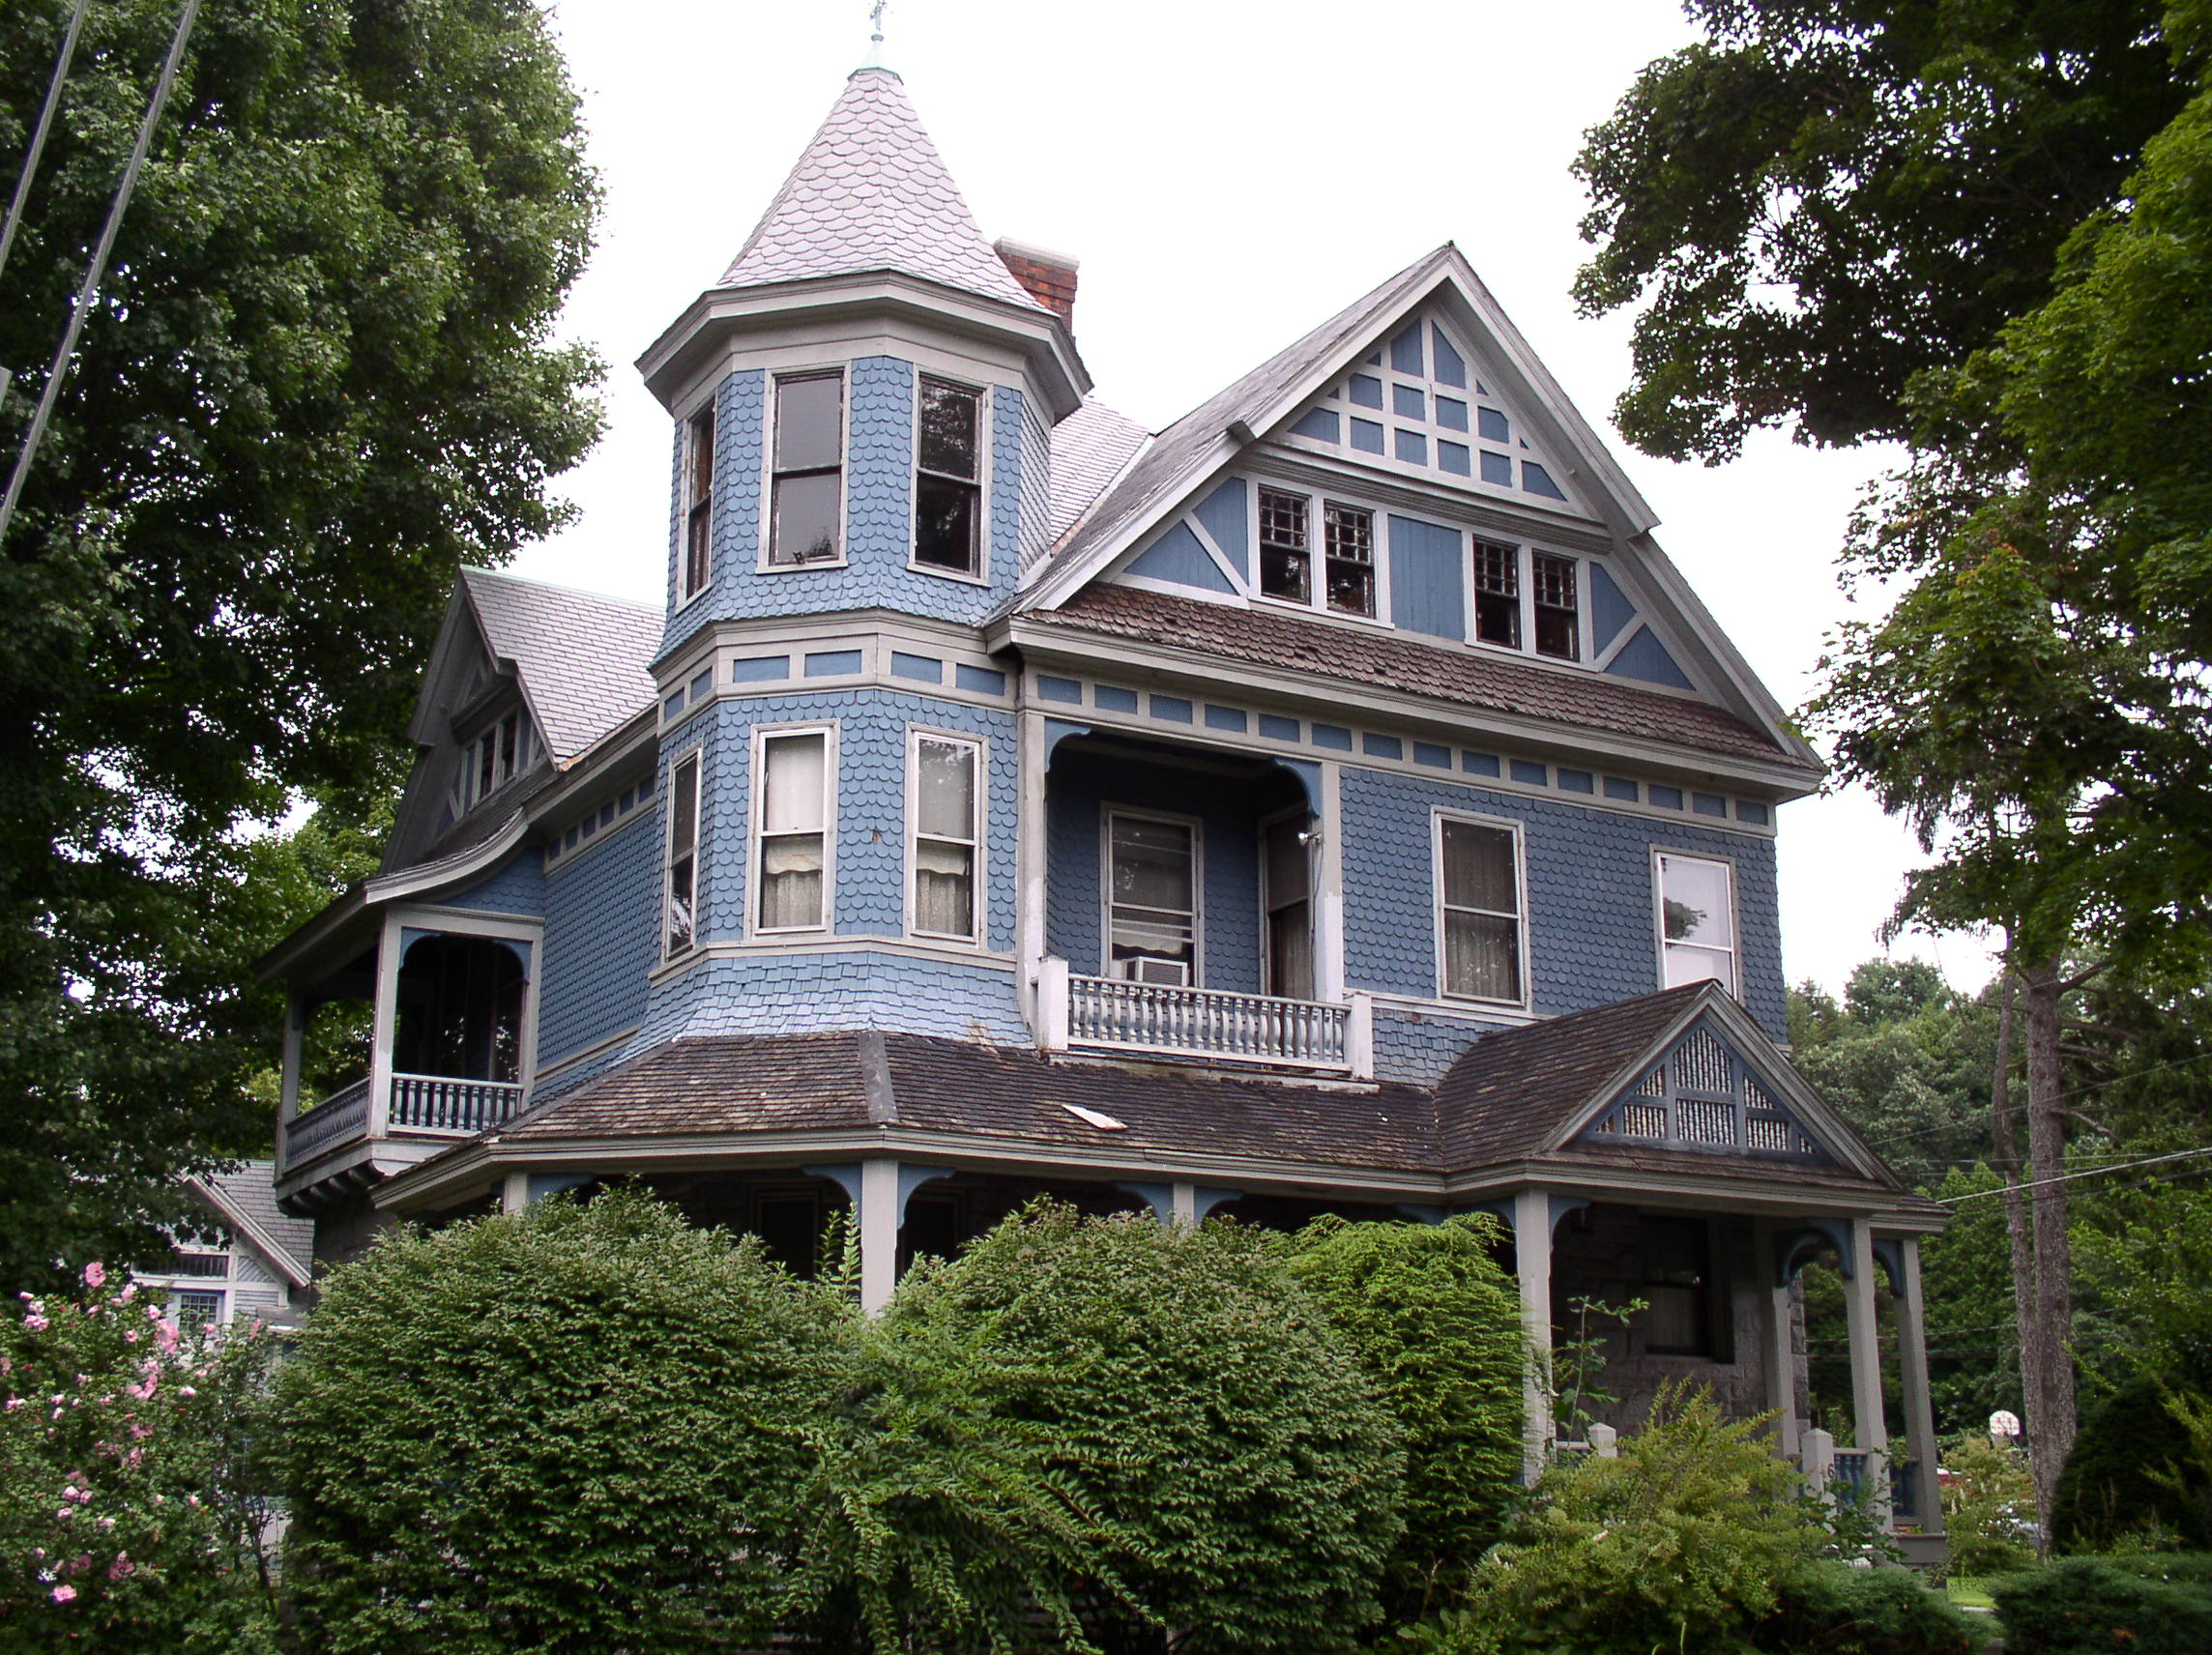 Queen Anne Architectural Styles Of America And Europe